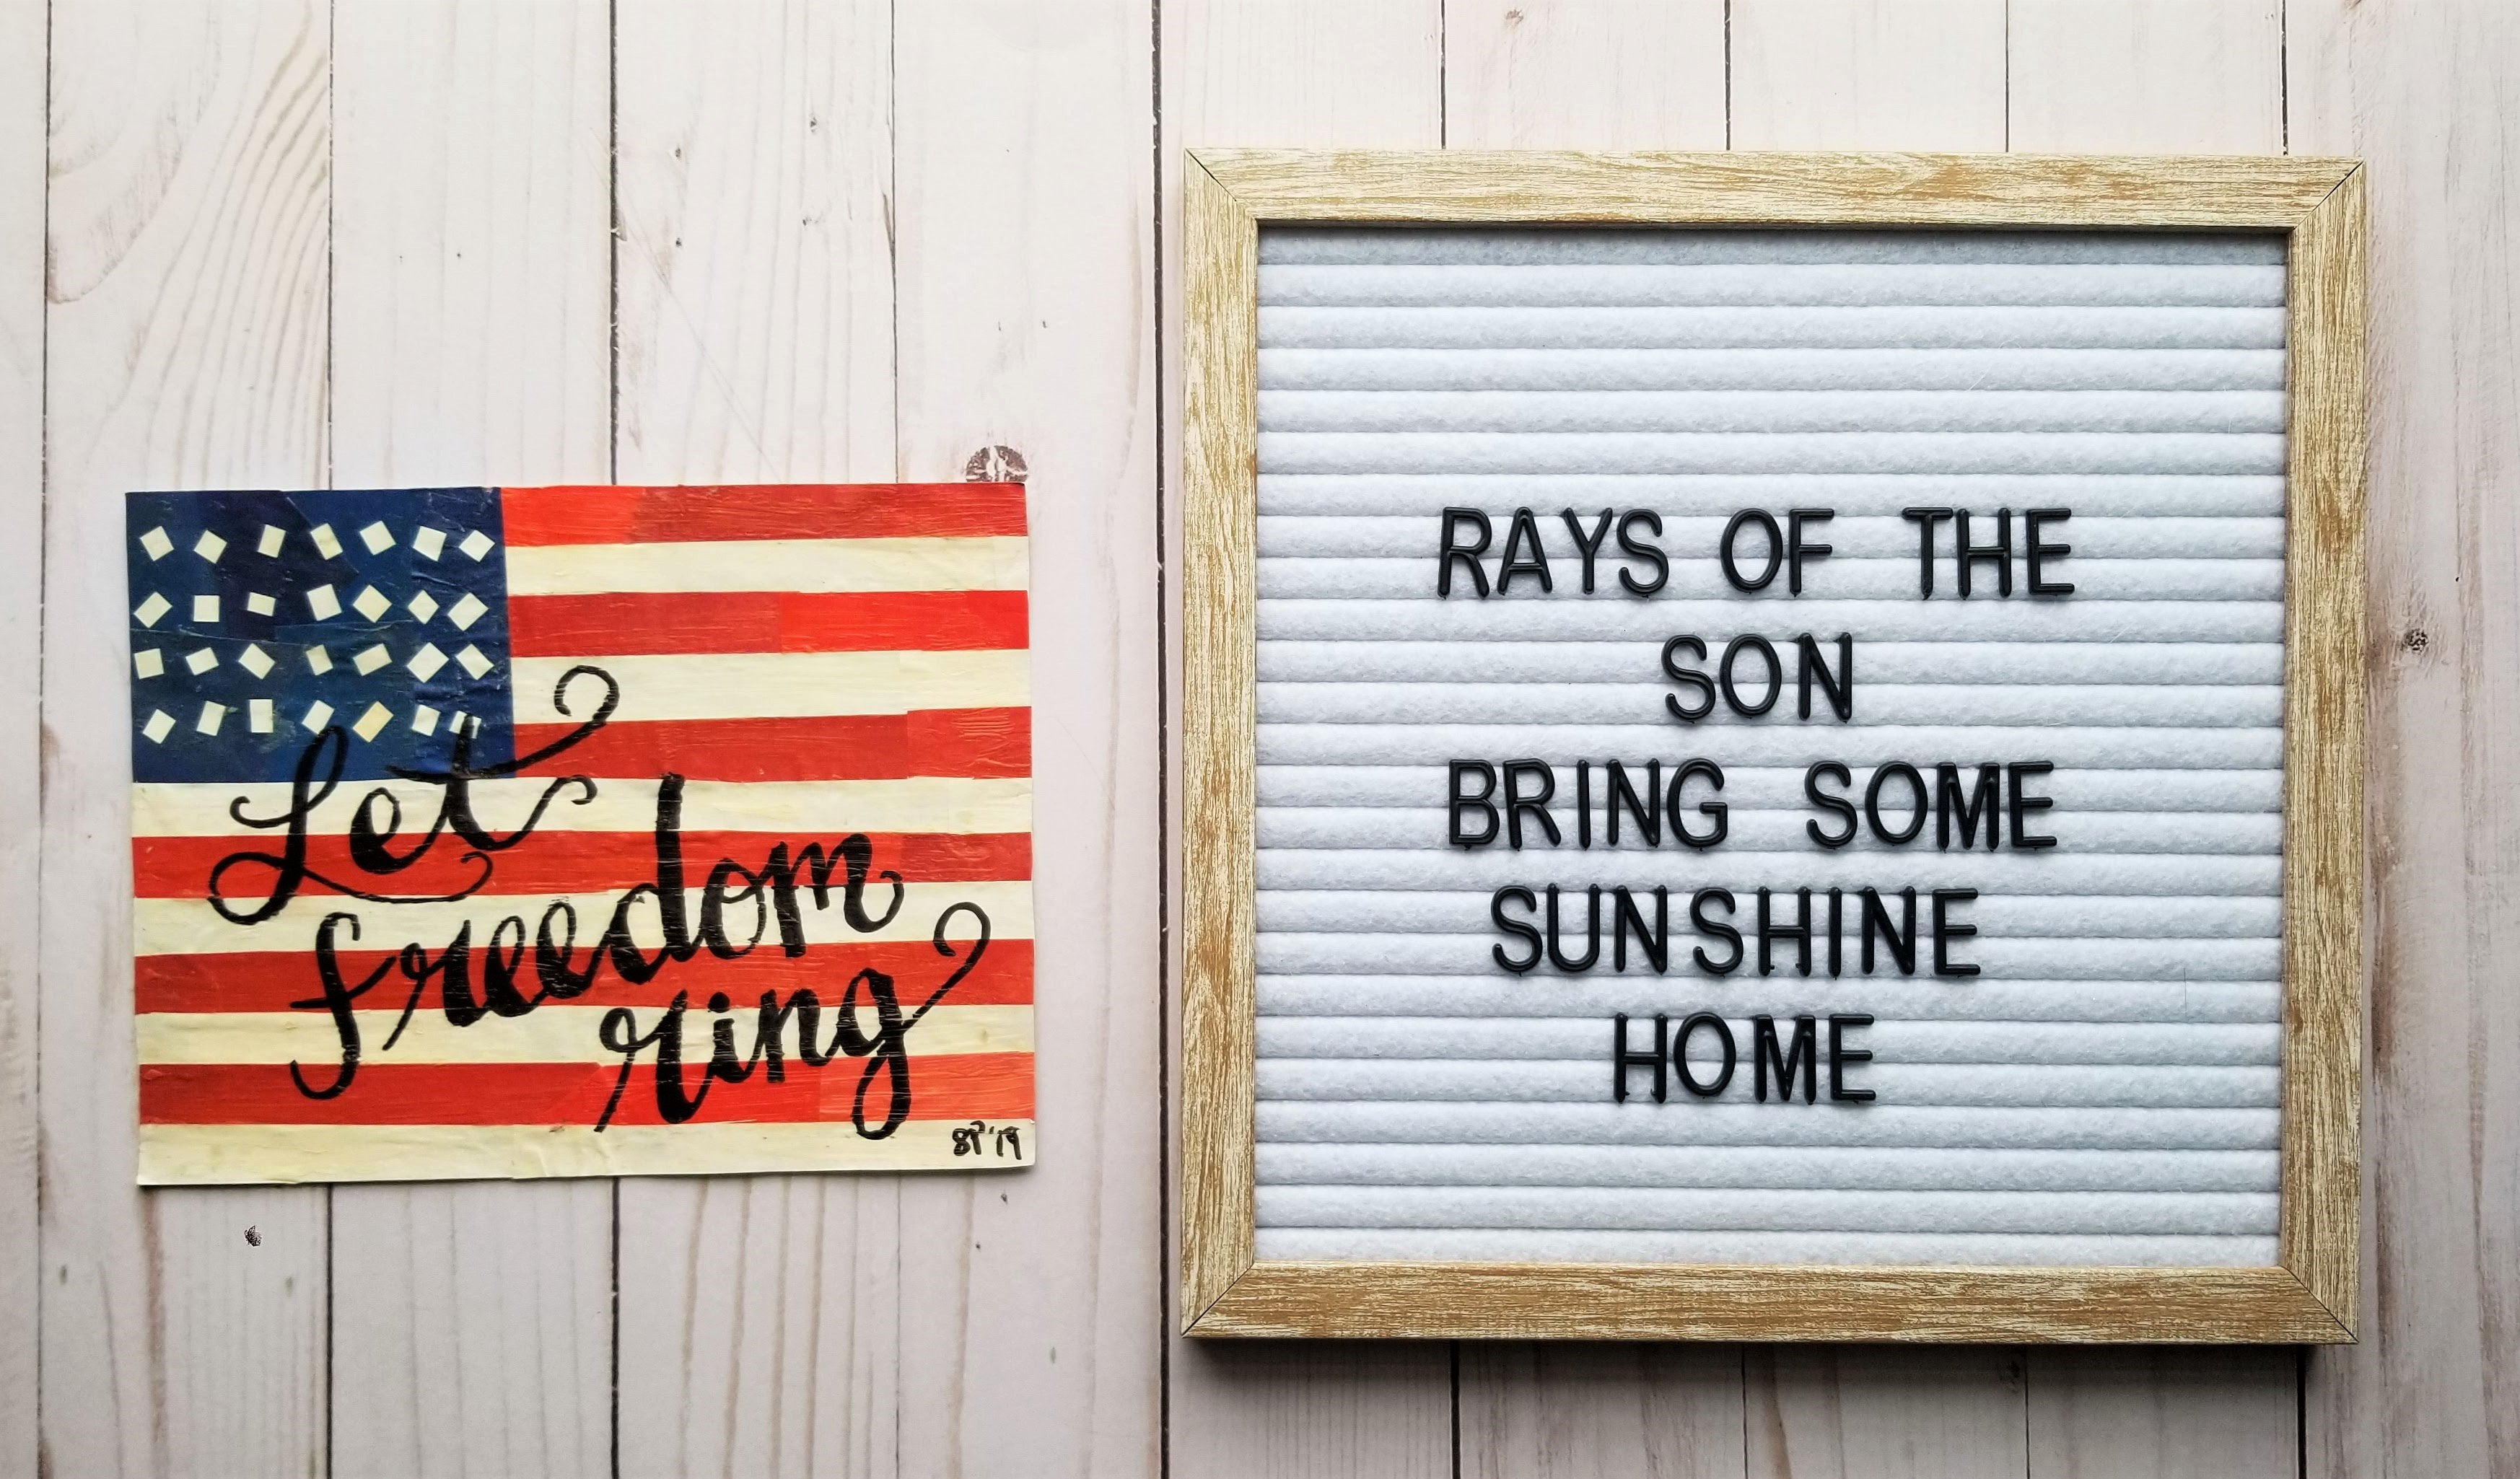 American Flag Collage - Rays of the Son